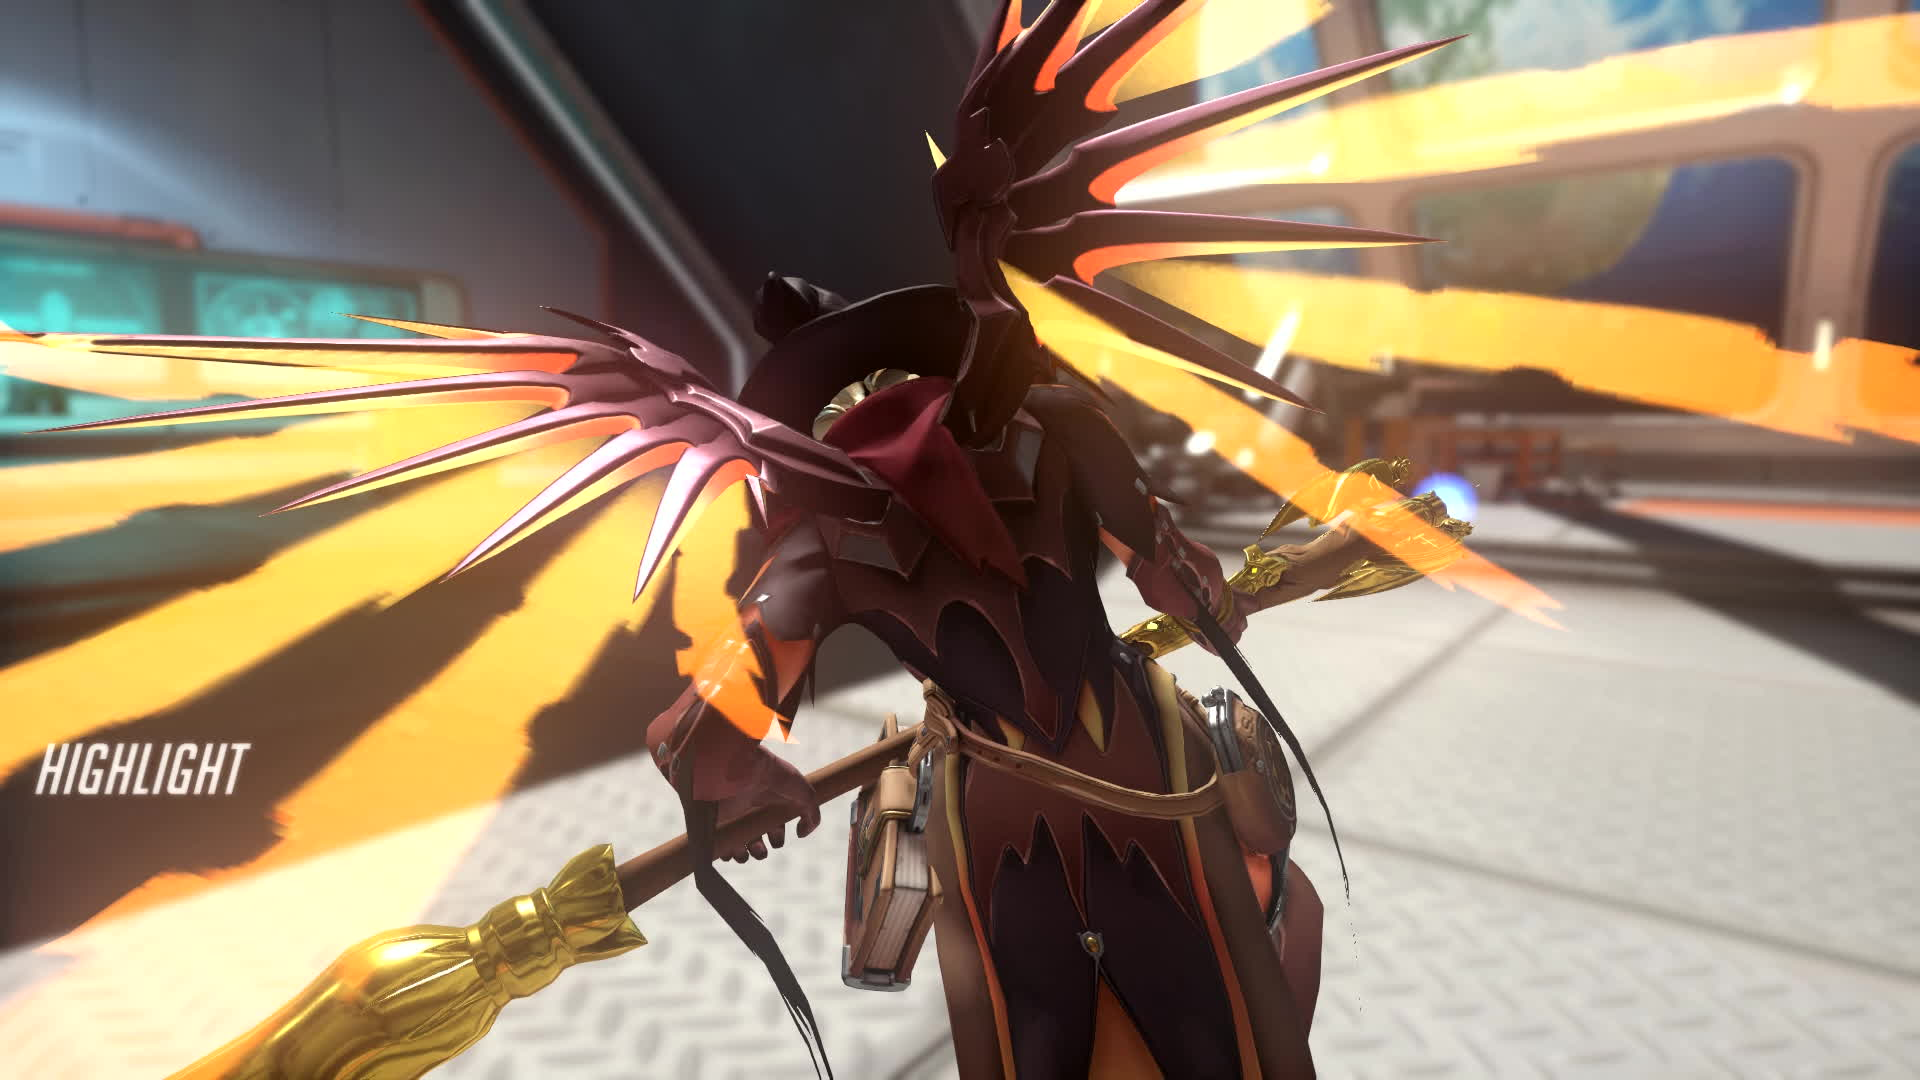 mercy, overwatch, 76 ulted, which is great and all, but, GIFs